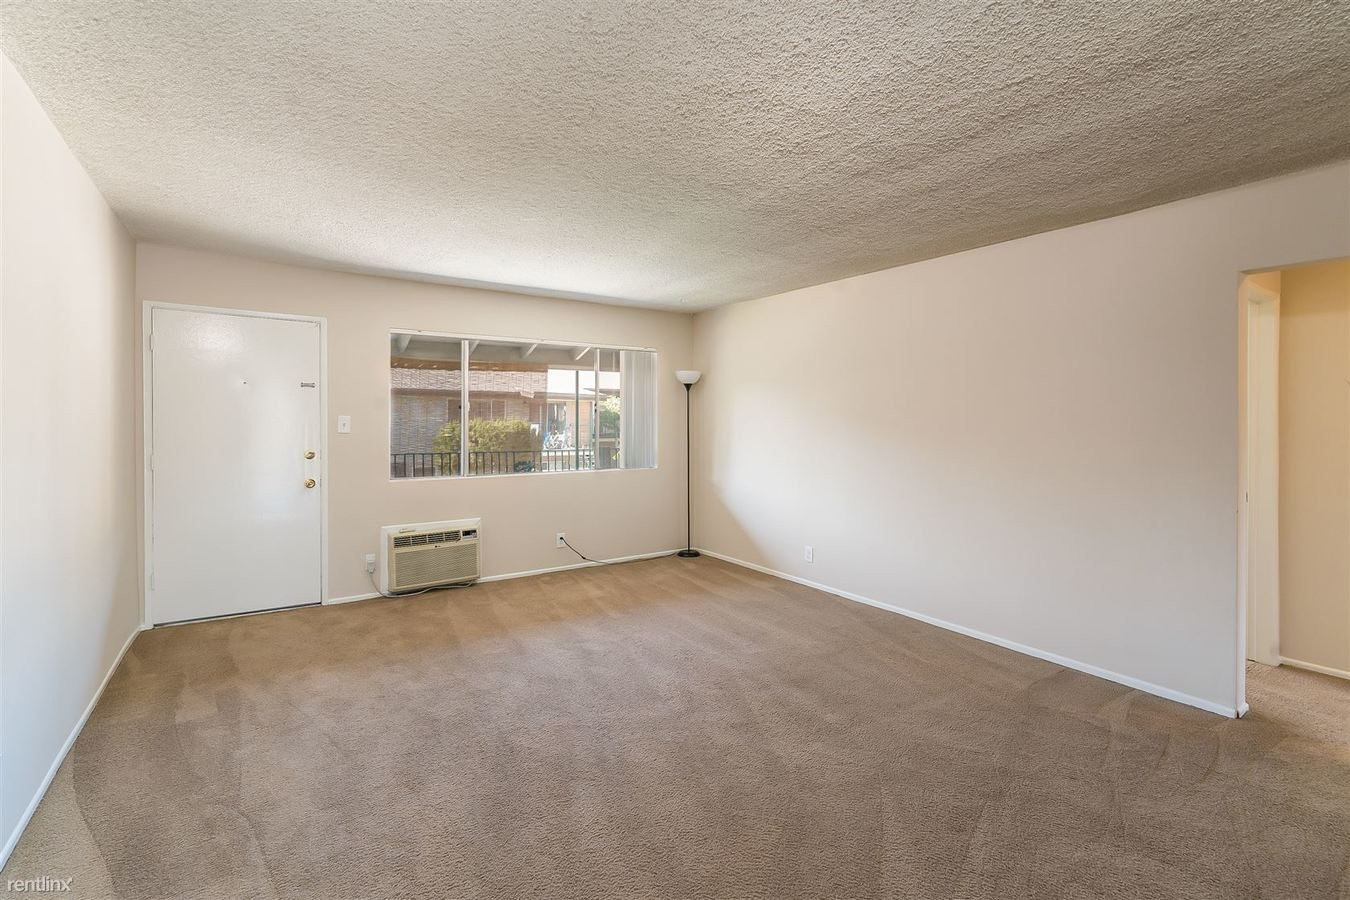 1 Bedroom 1 Bathroom Apartment for rent at Evergreen Pine Apartments in Temple City, CA